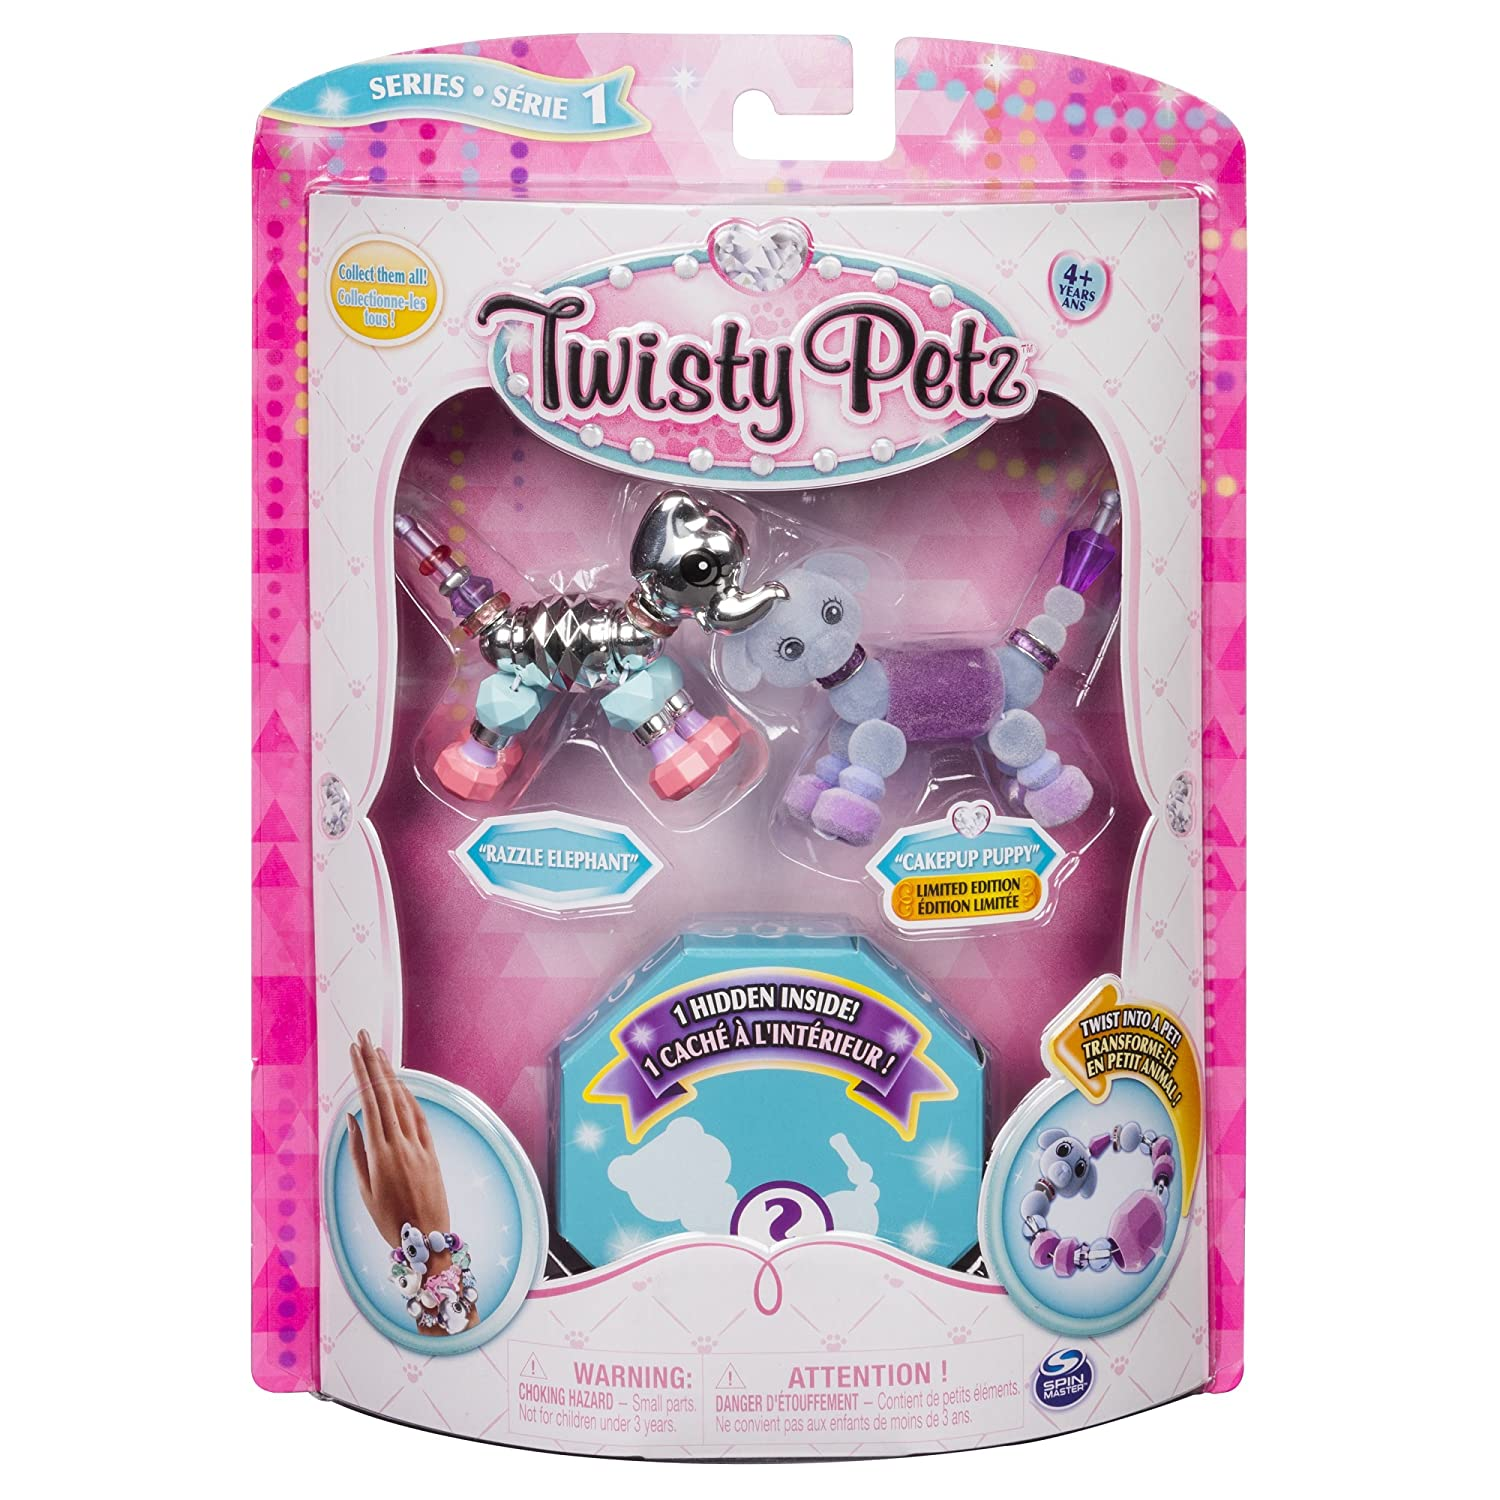 Twisty Petz – 3-Pack – Razzle Elephant, Cakepup Puppy and Surprise Collectible Bracelet Set for Kids Spin Master Ltd 20100953